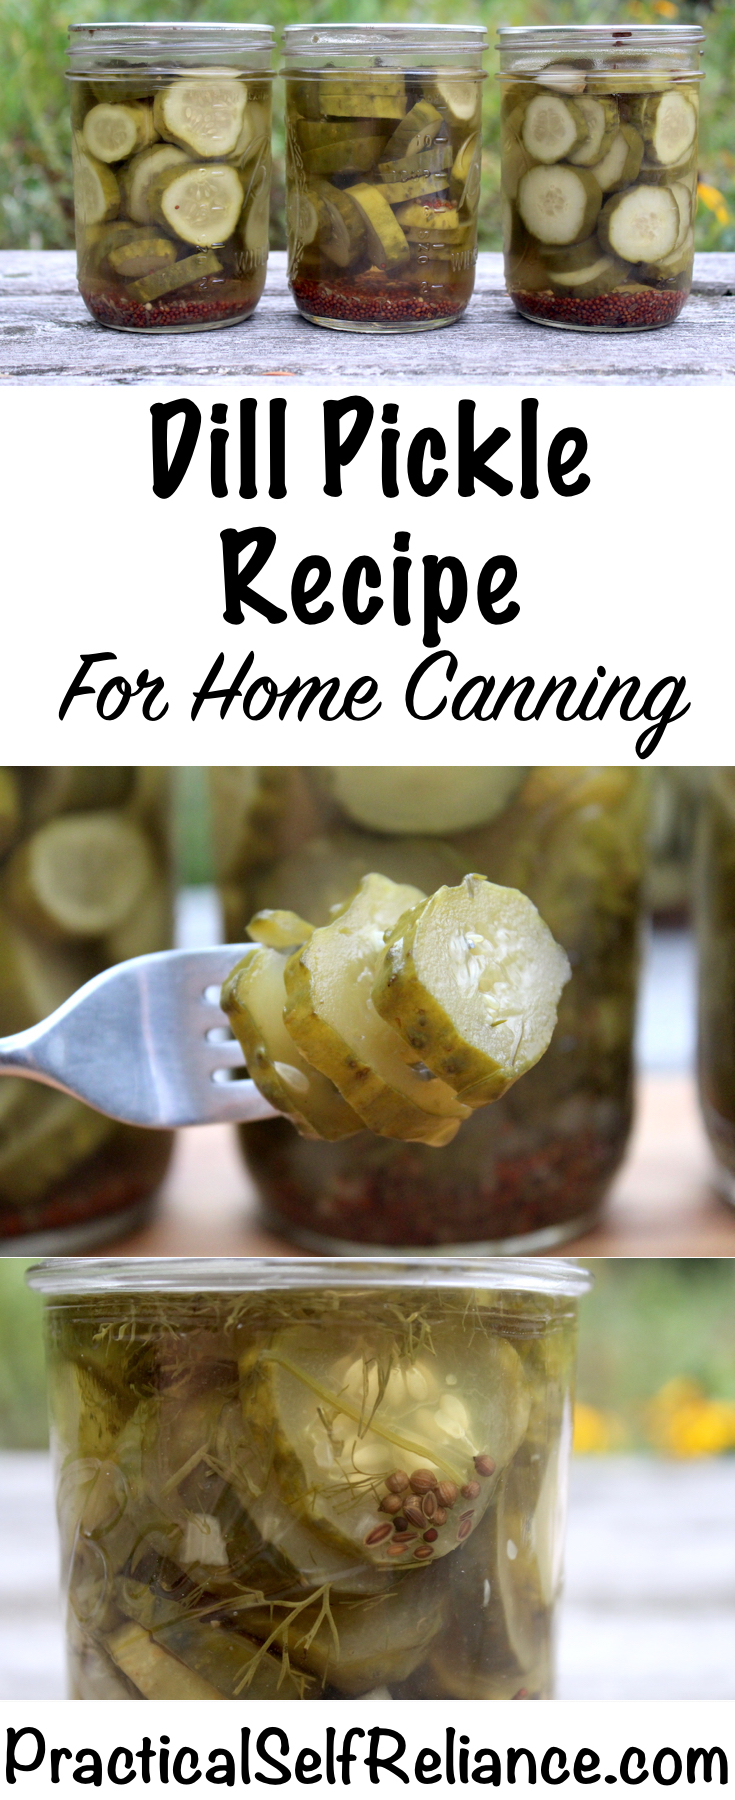 Dill Pickle Recipe for Canning ~ Safely Preserve Dill Pickles at Home